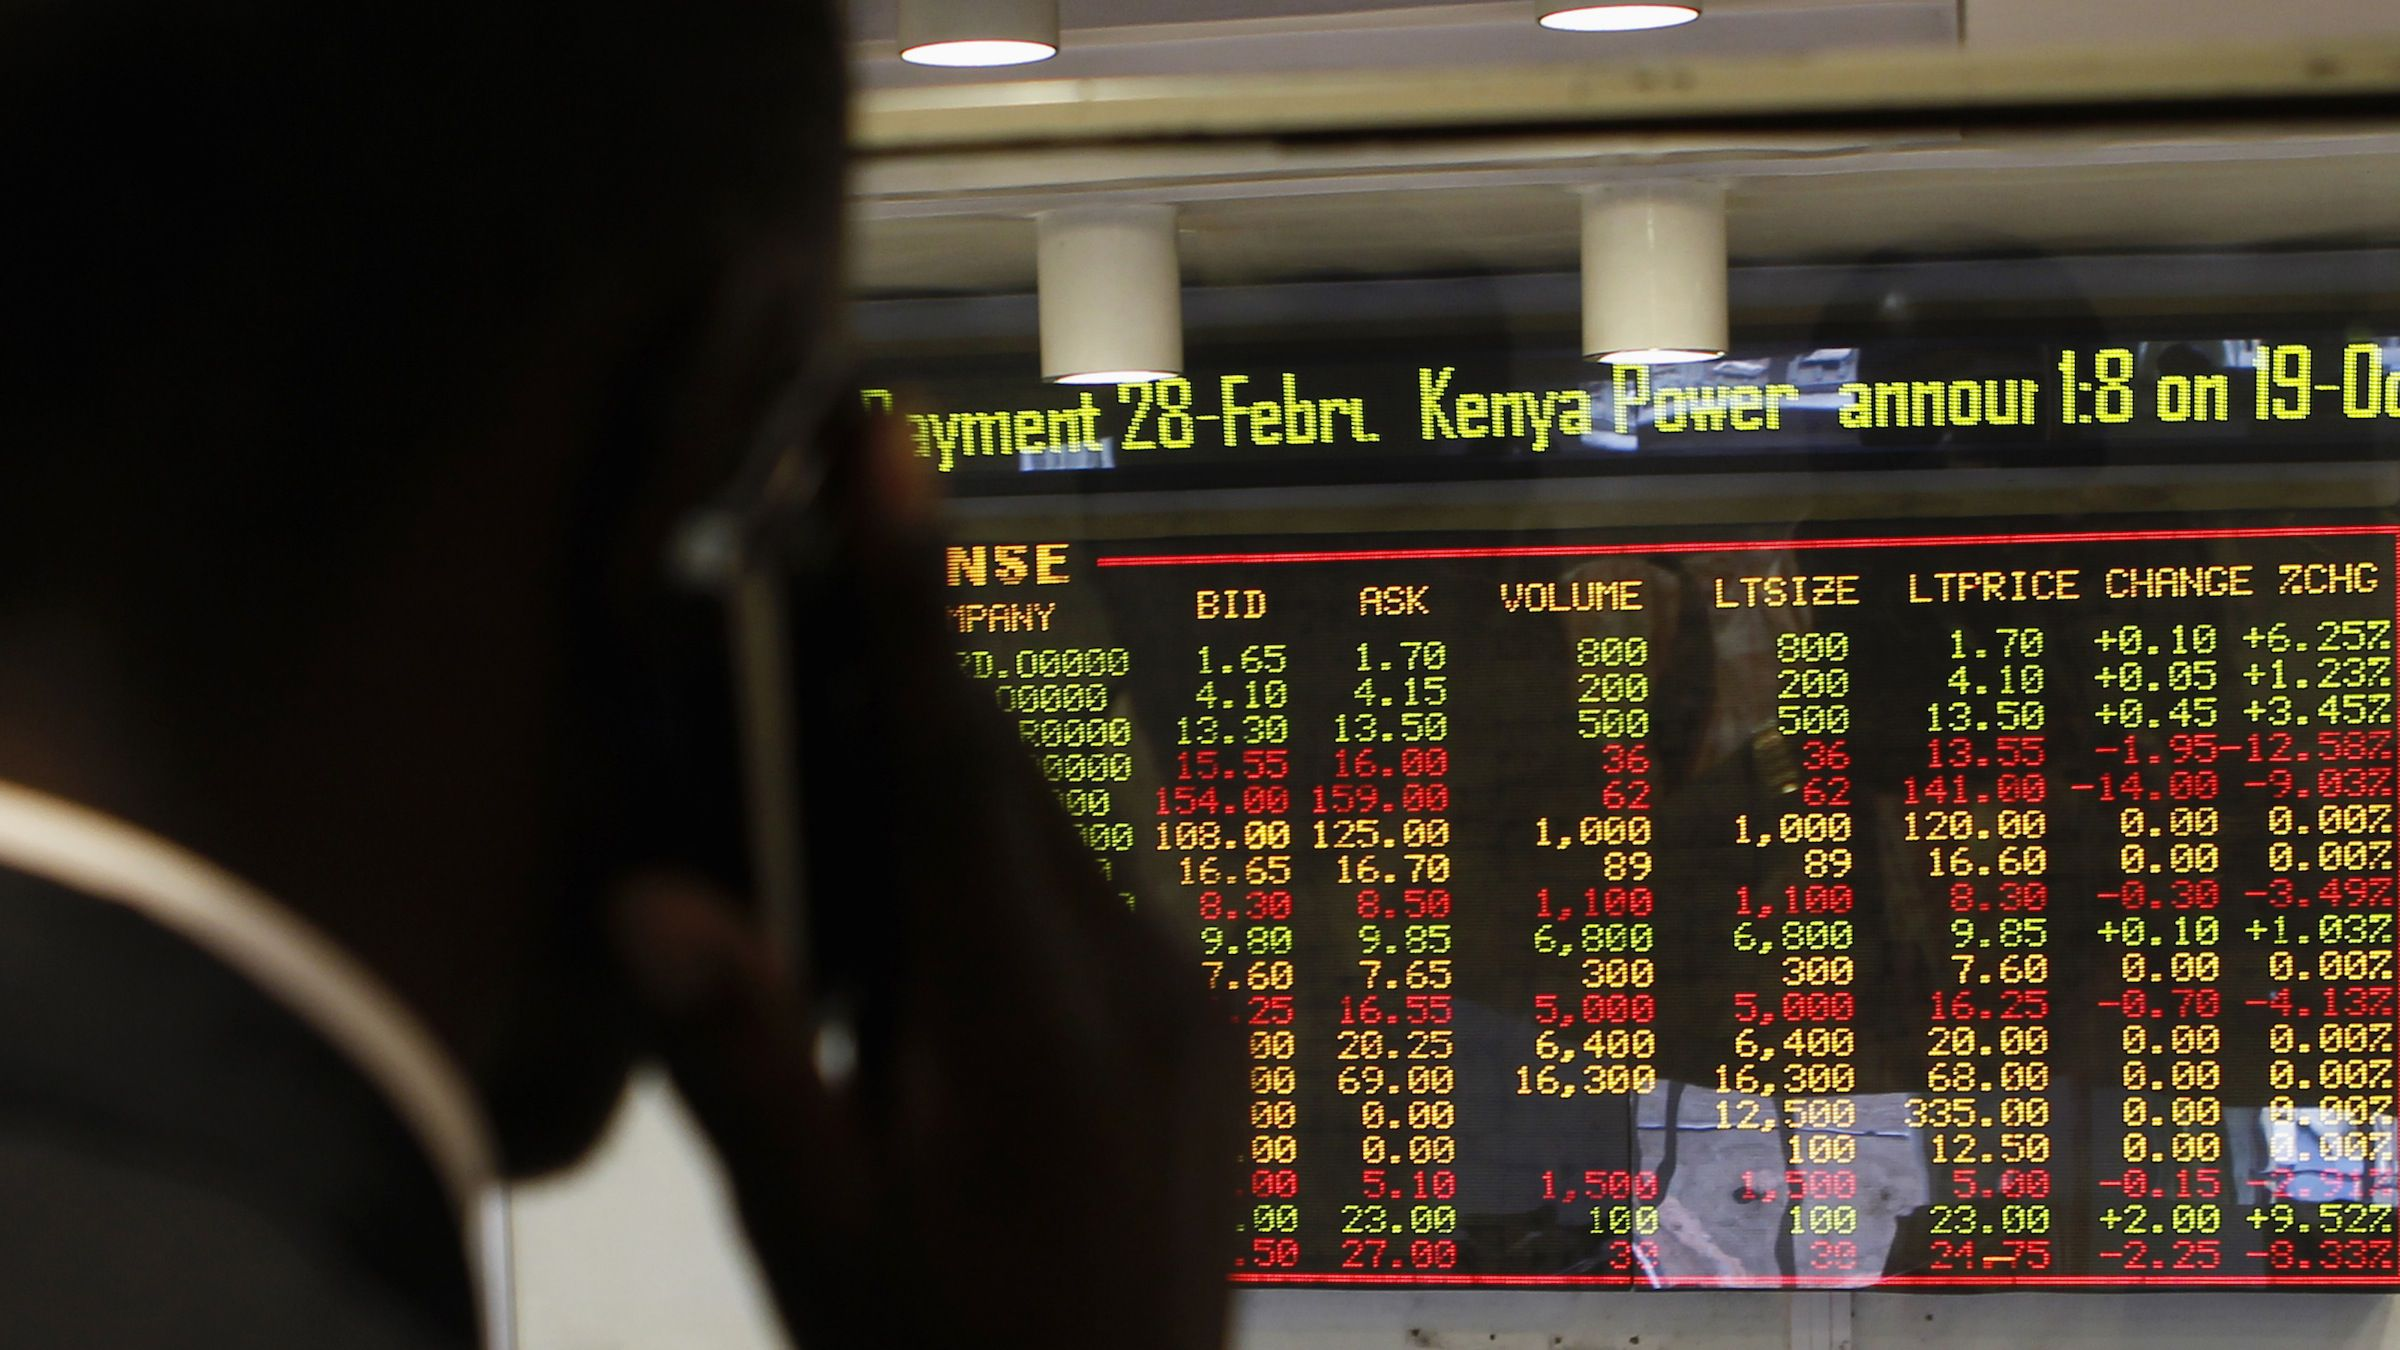 A stockbroker transacts shares during a trading session at the Nairobi Securities Exchange in Kenya's capital Nairobi January 11, 2012. REUTERS/Thomas Mukoya (KENYA - Tags: BUSINESS SOCIETY) - RTR2W5B2